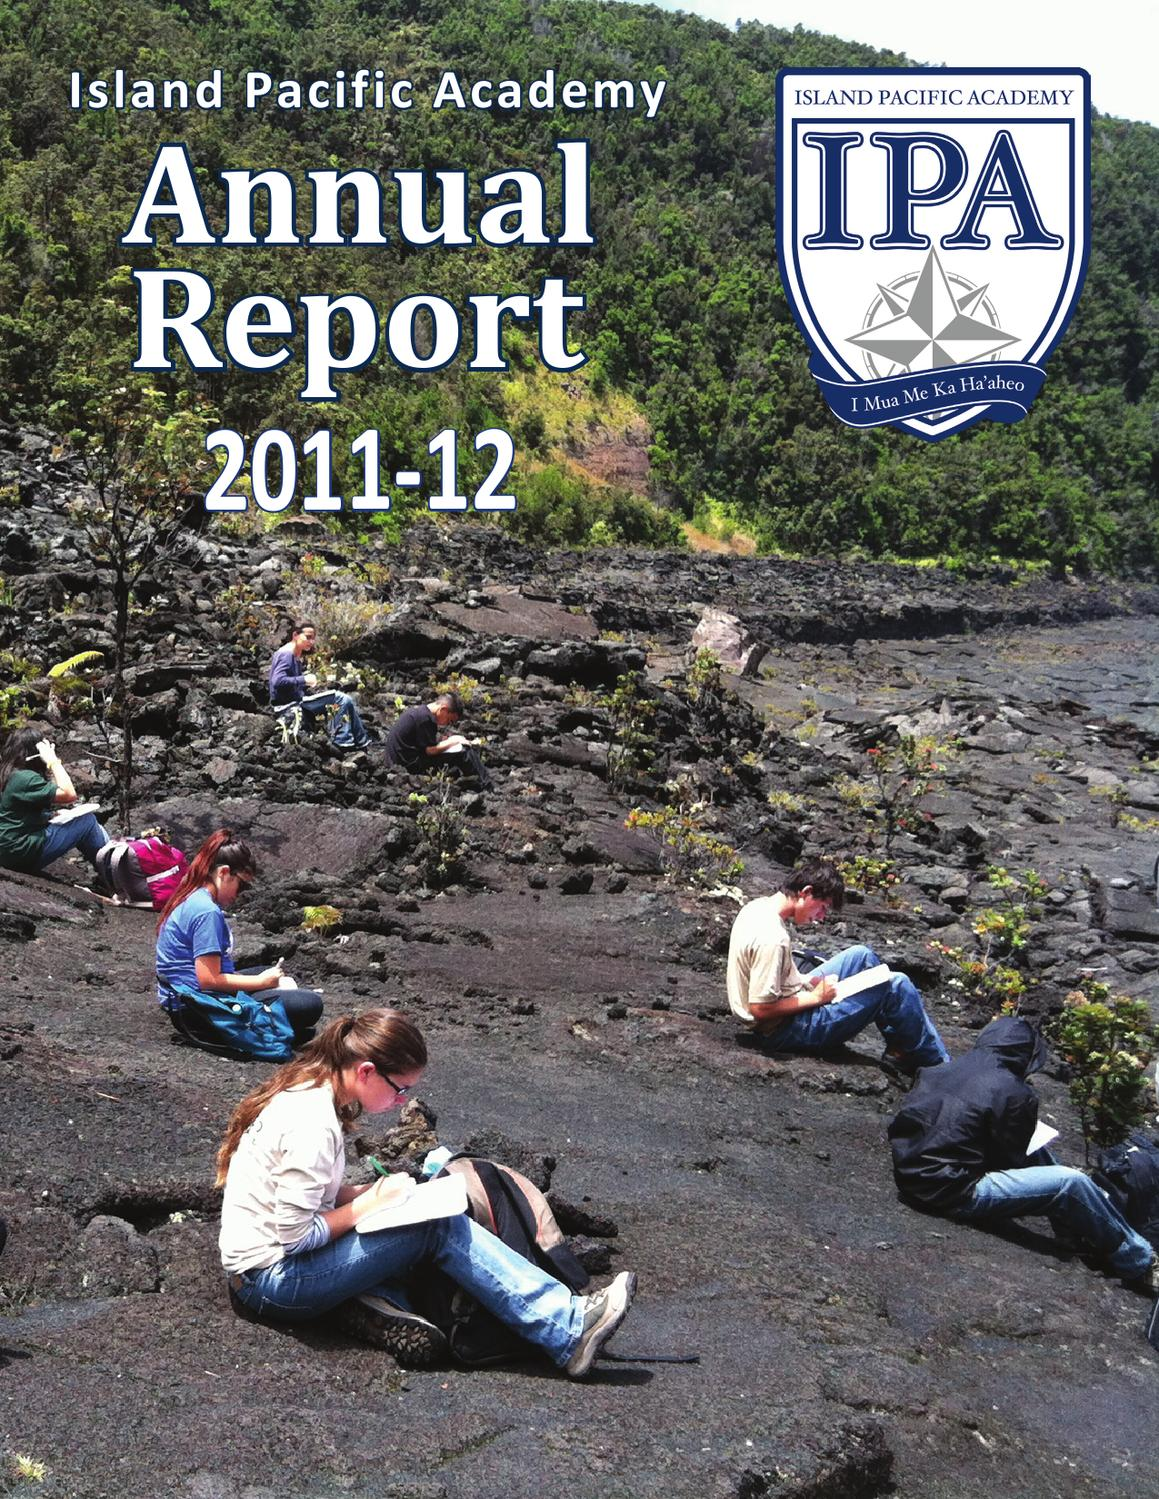 IPA Annual Report 2011-2012 by IslandPacificAcademy - issuu ec8d1cadf